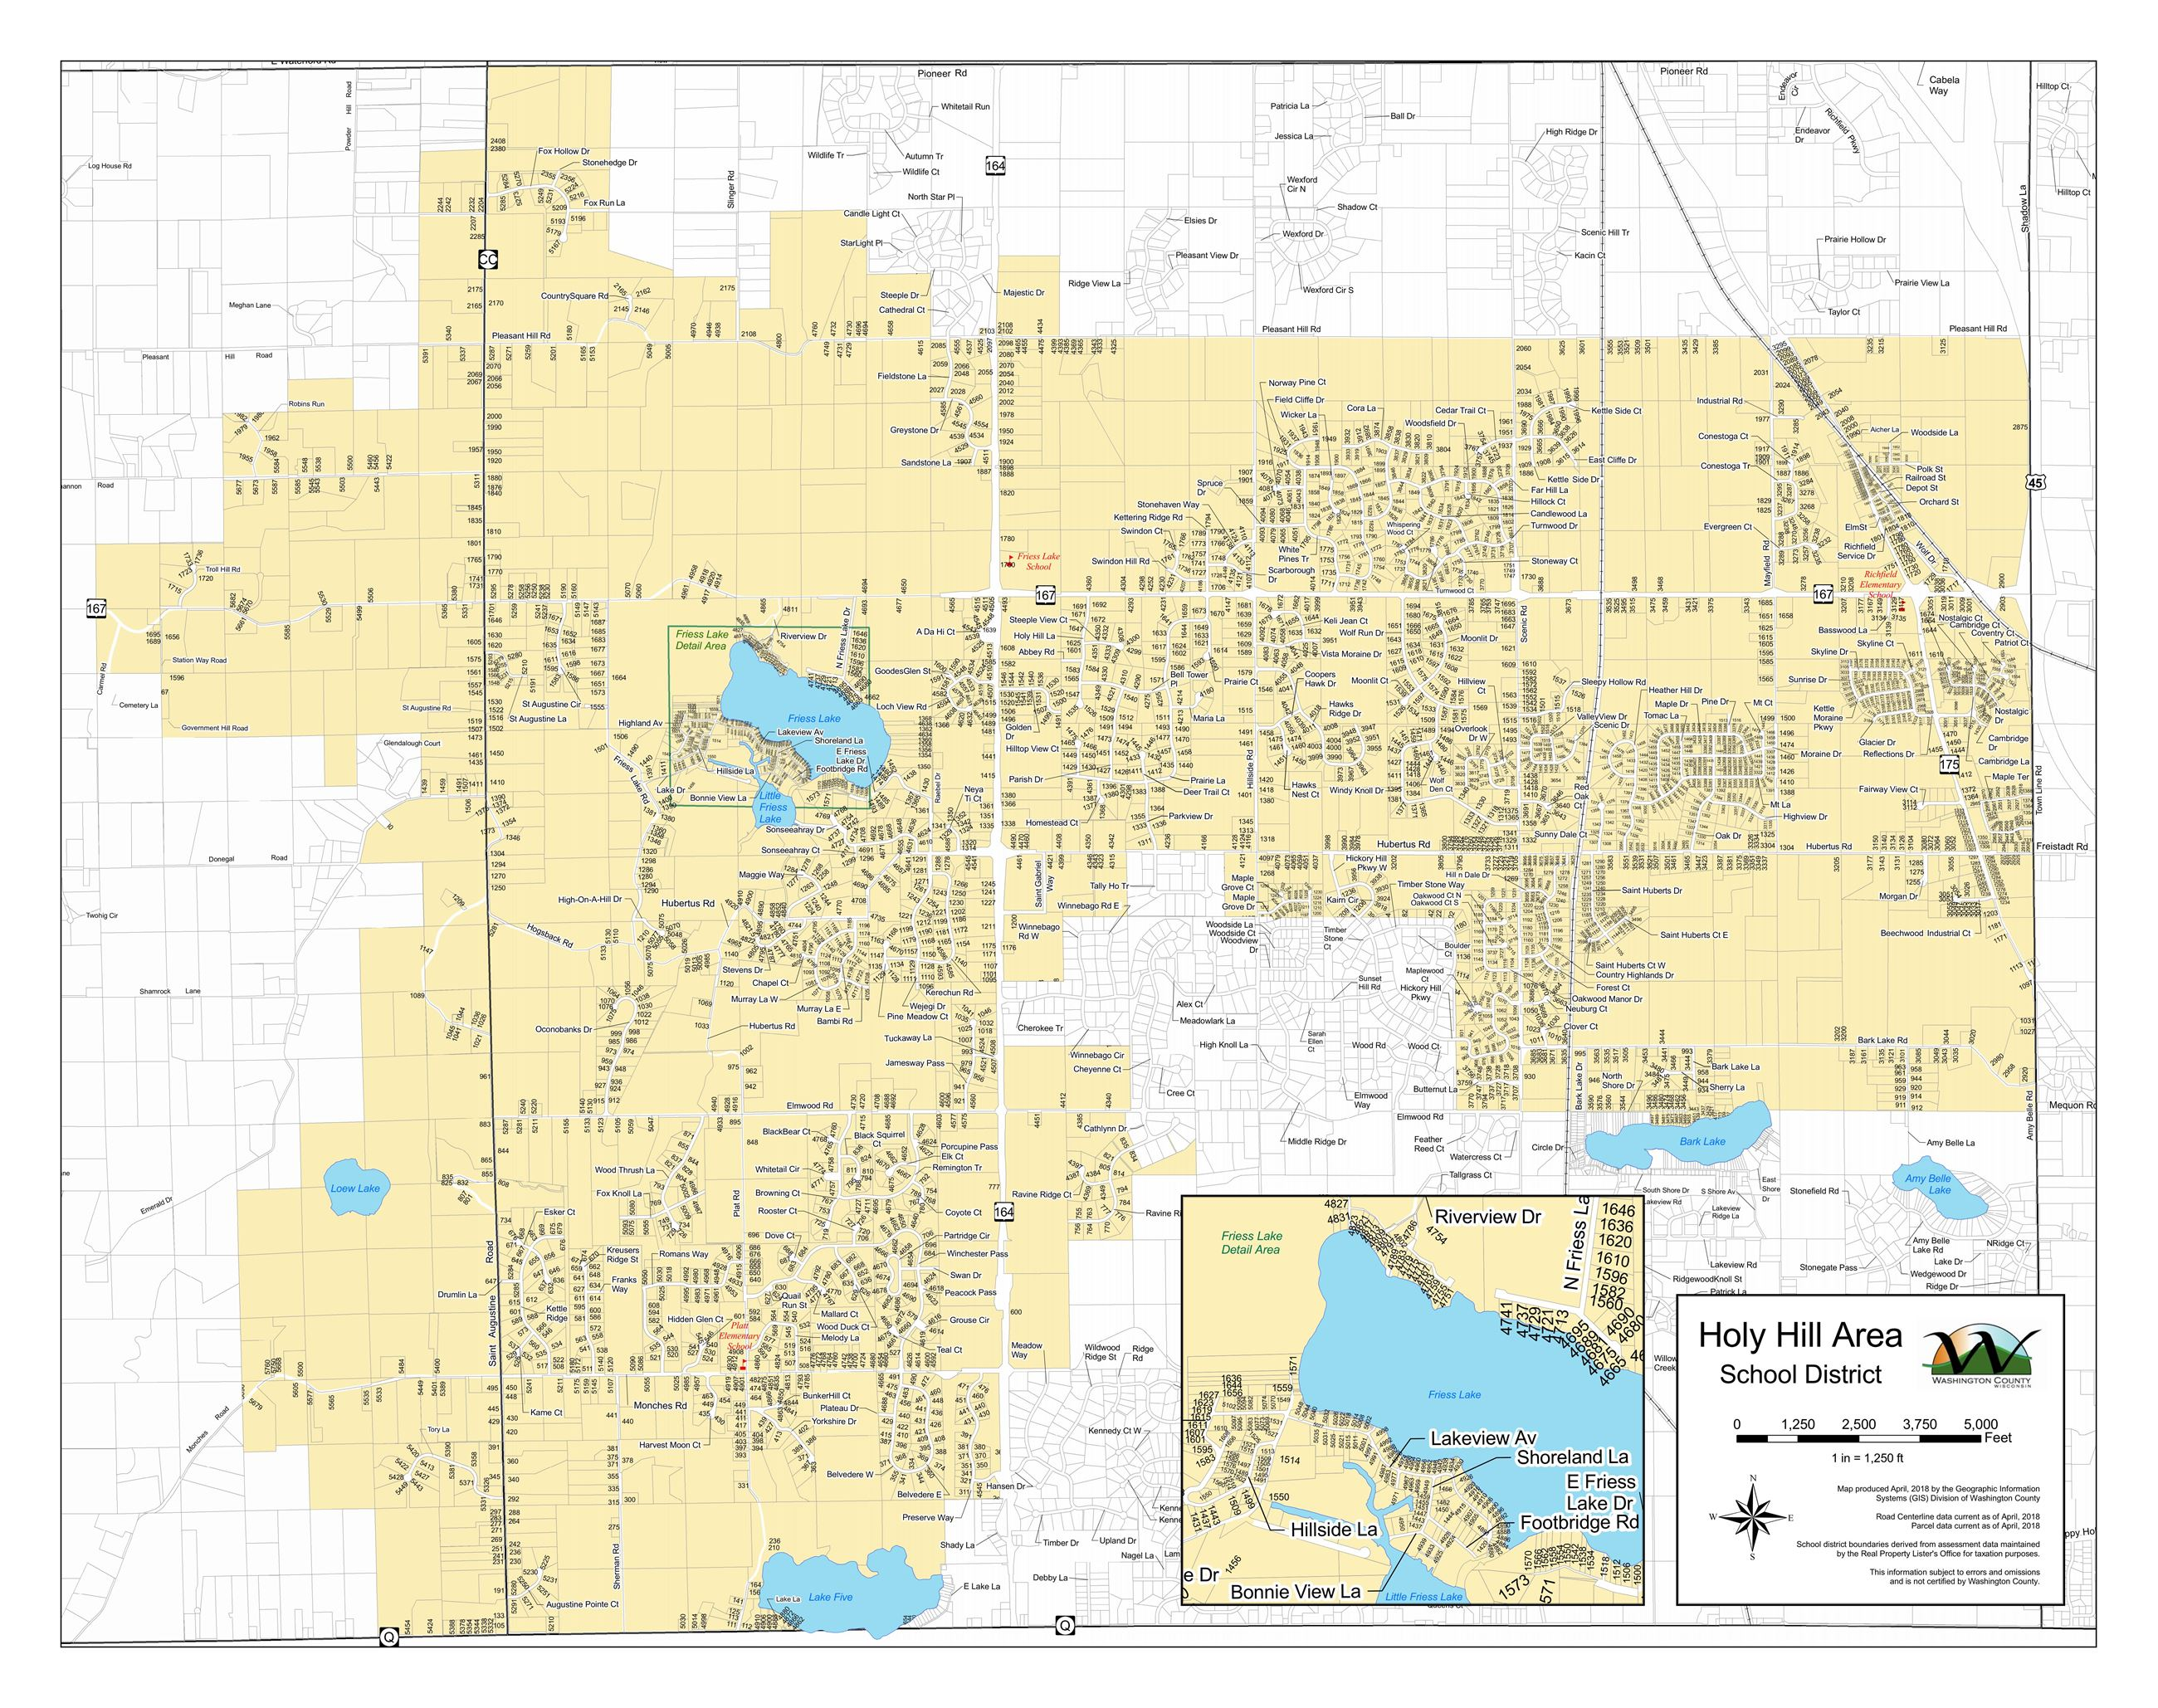 Holy Hill Area School District  Map_Page_1